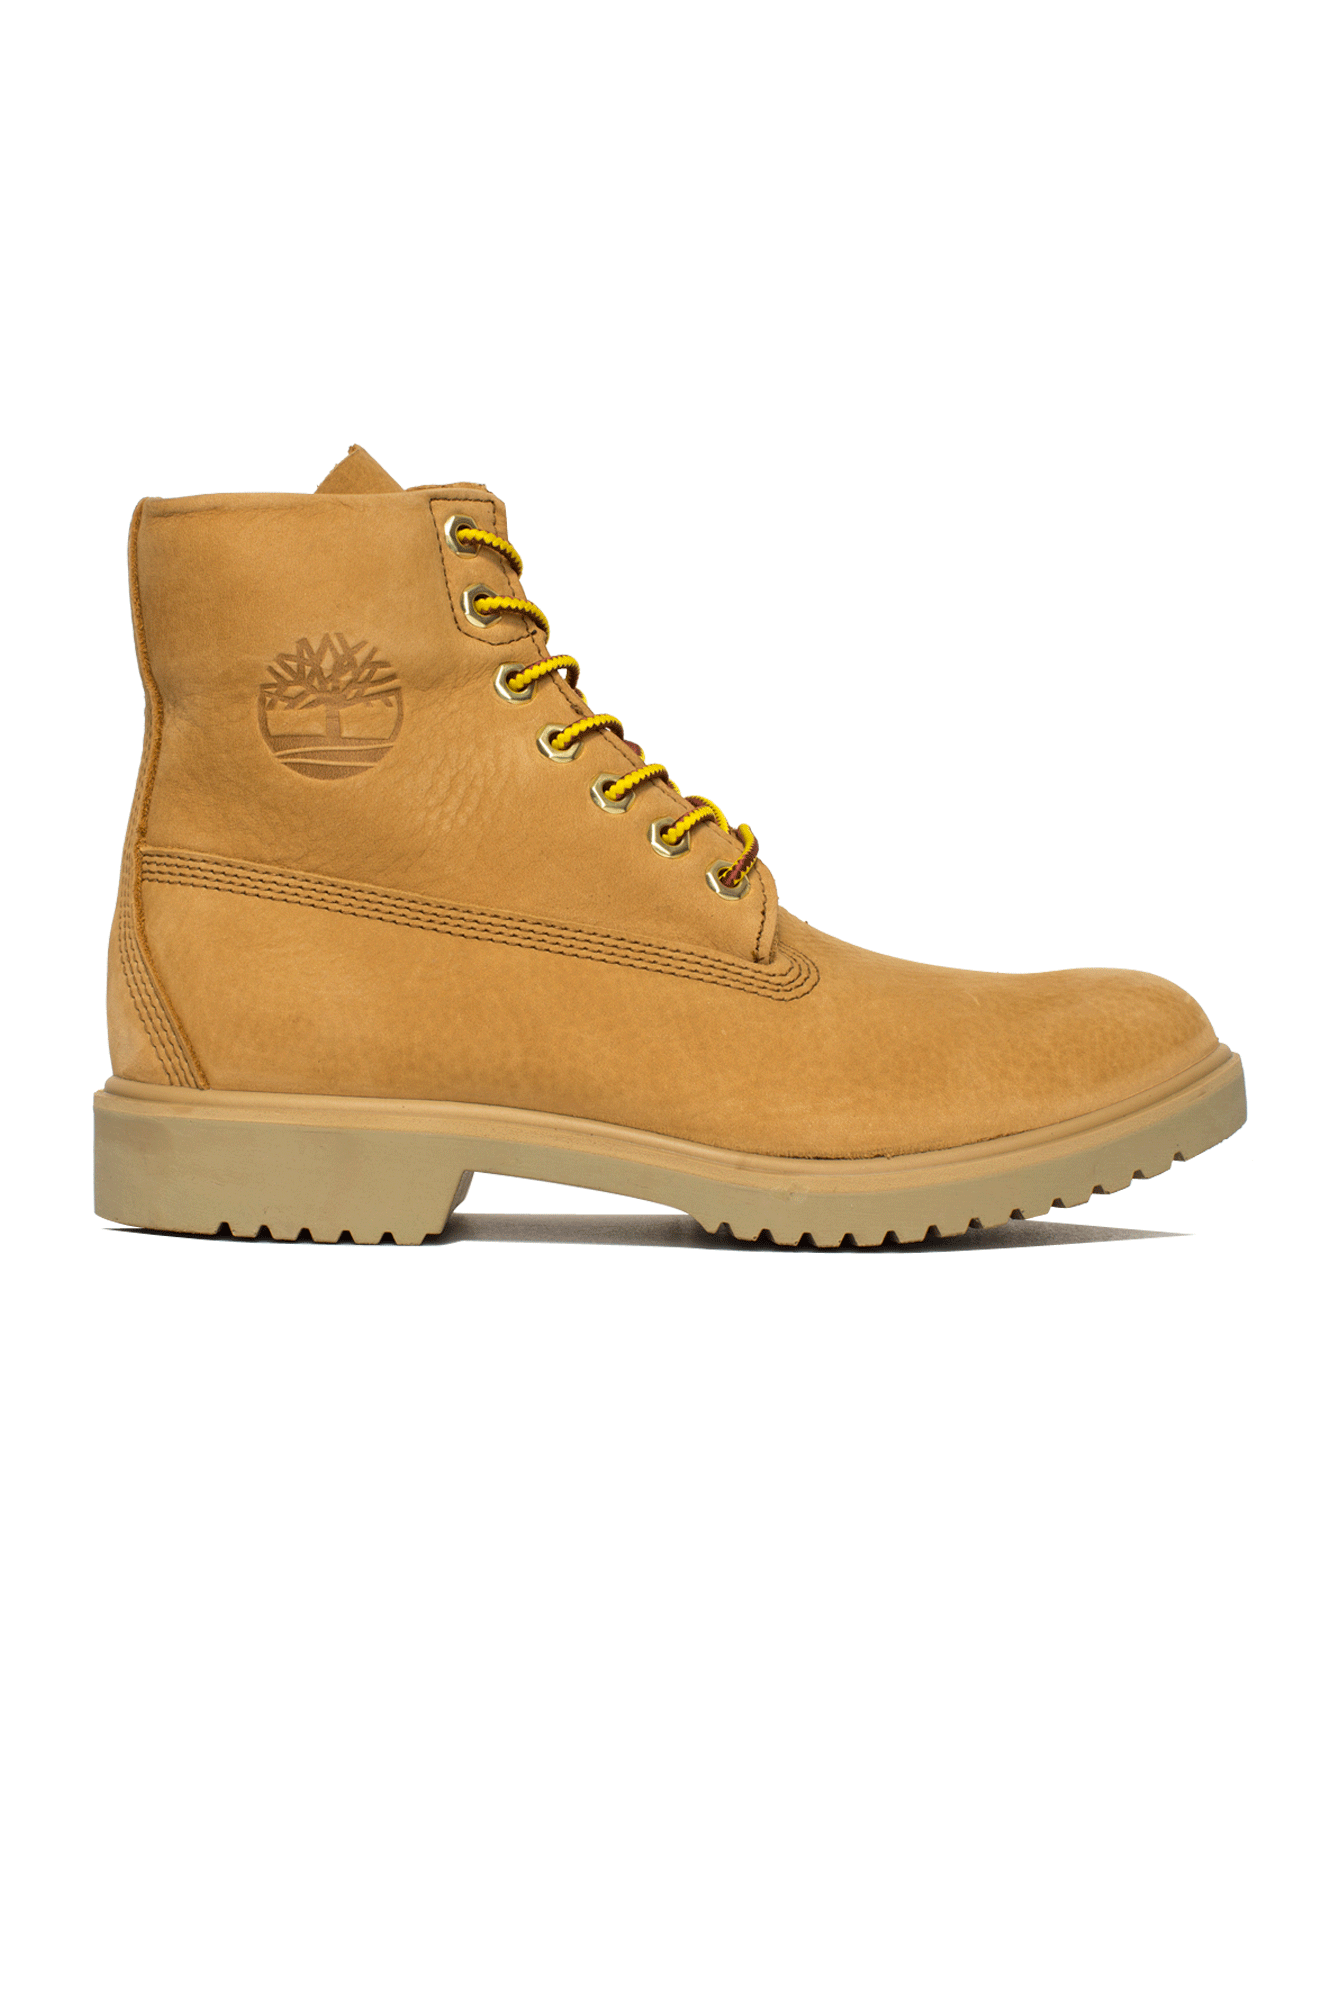 Timberland Scarpe da montagna 1973 Newman Boot Marrone A24XB2311#000#2311#7 - One Block Down